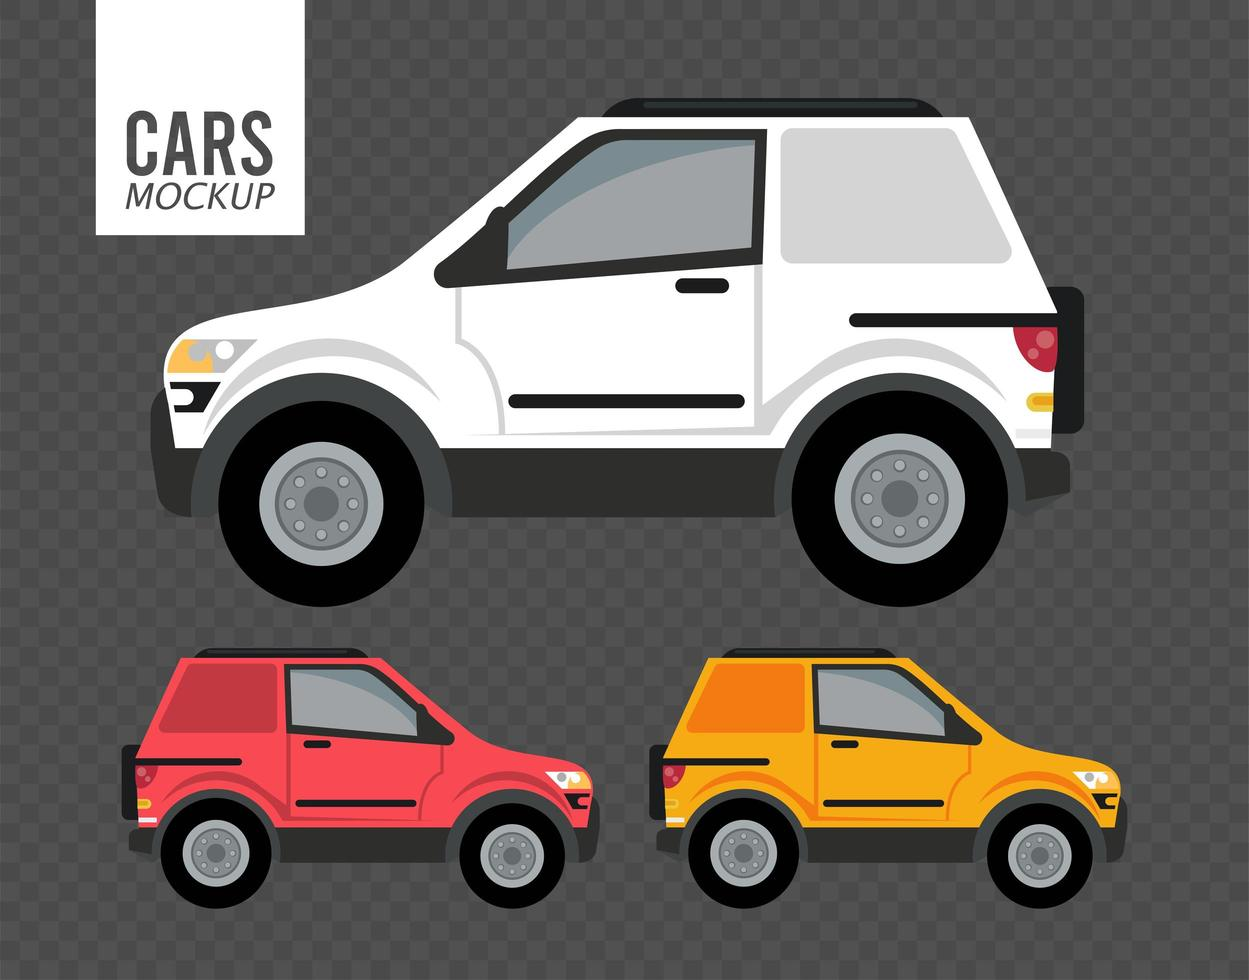 campers mockup cars vehicles icons vector